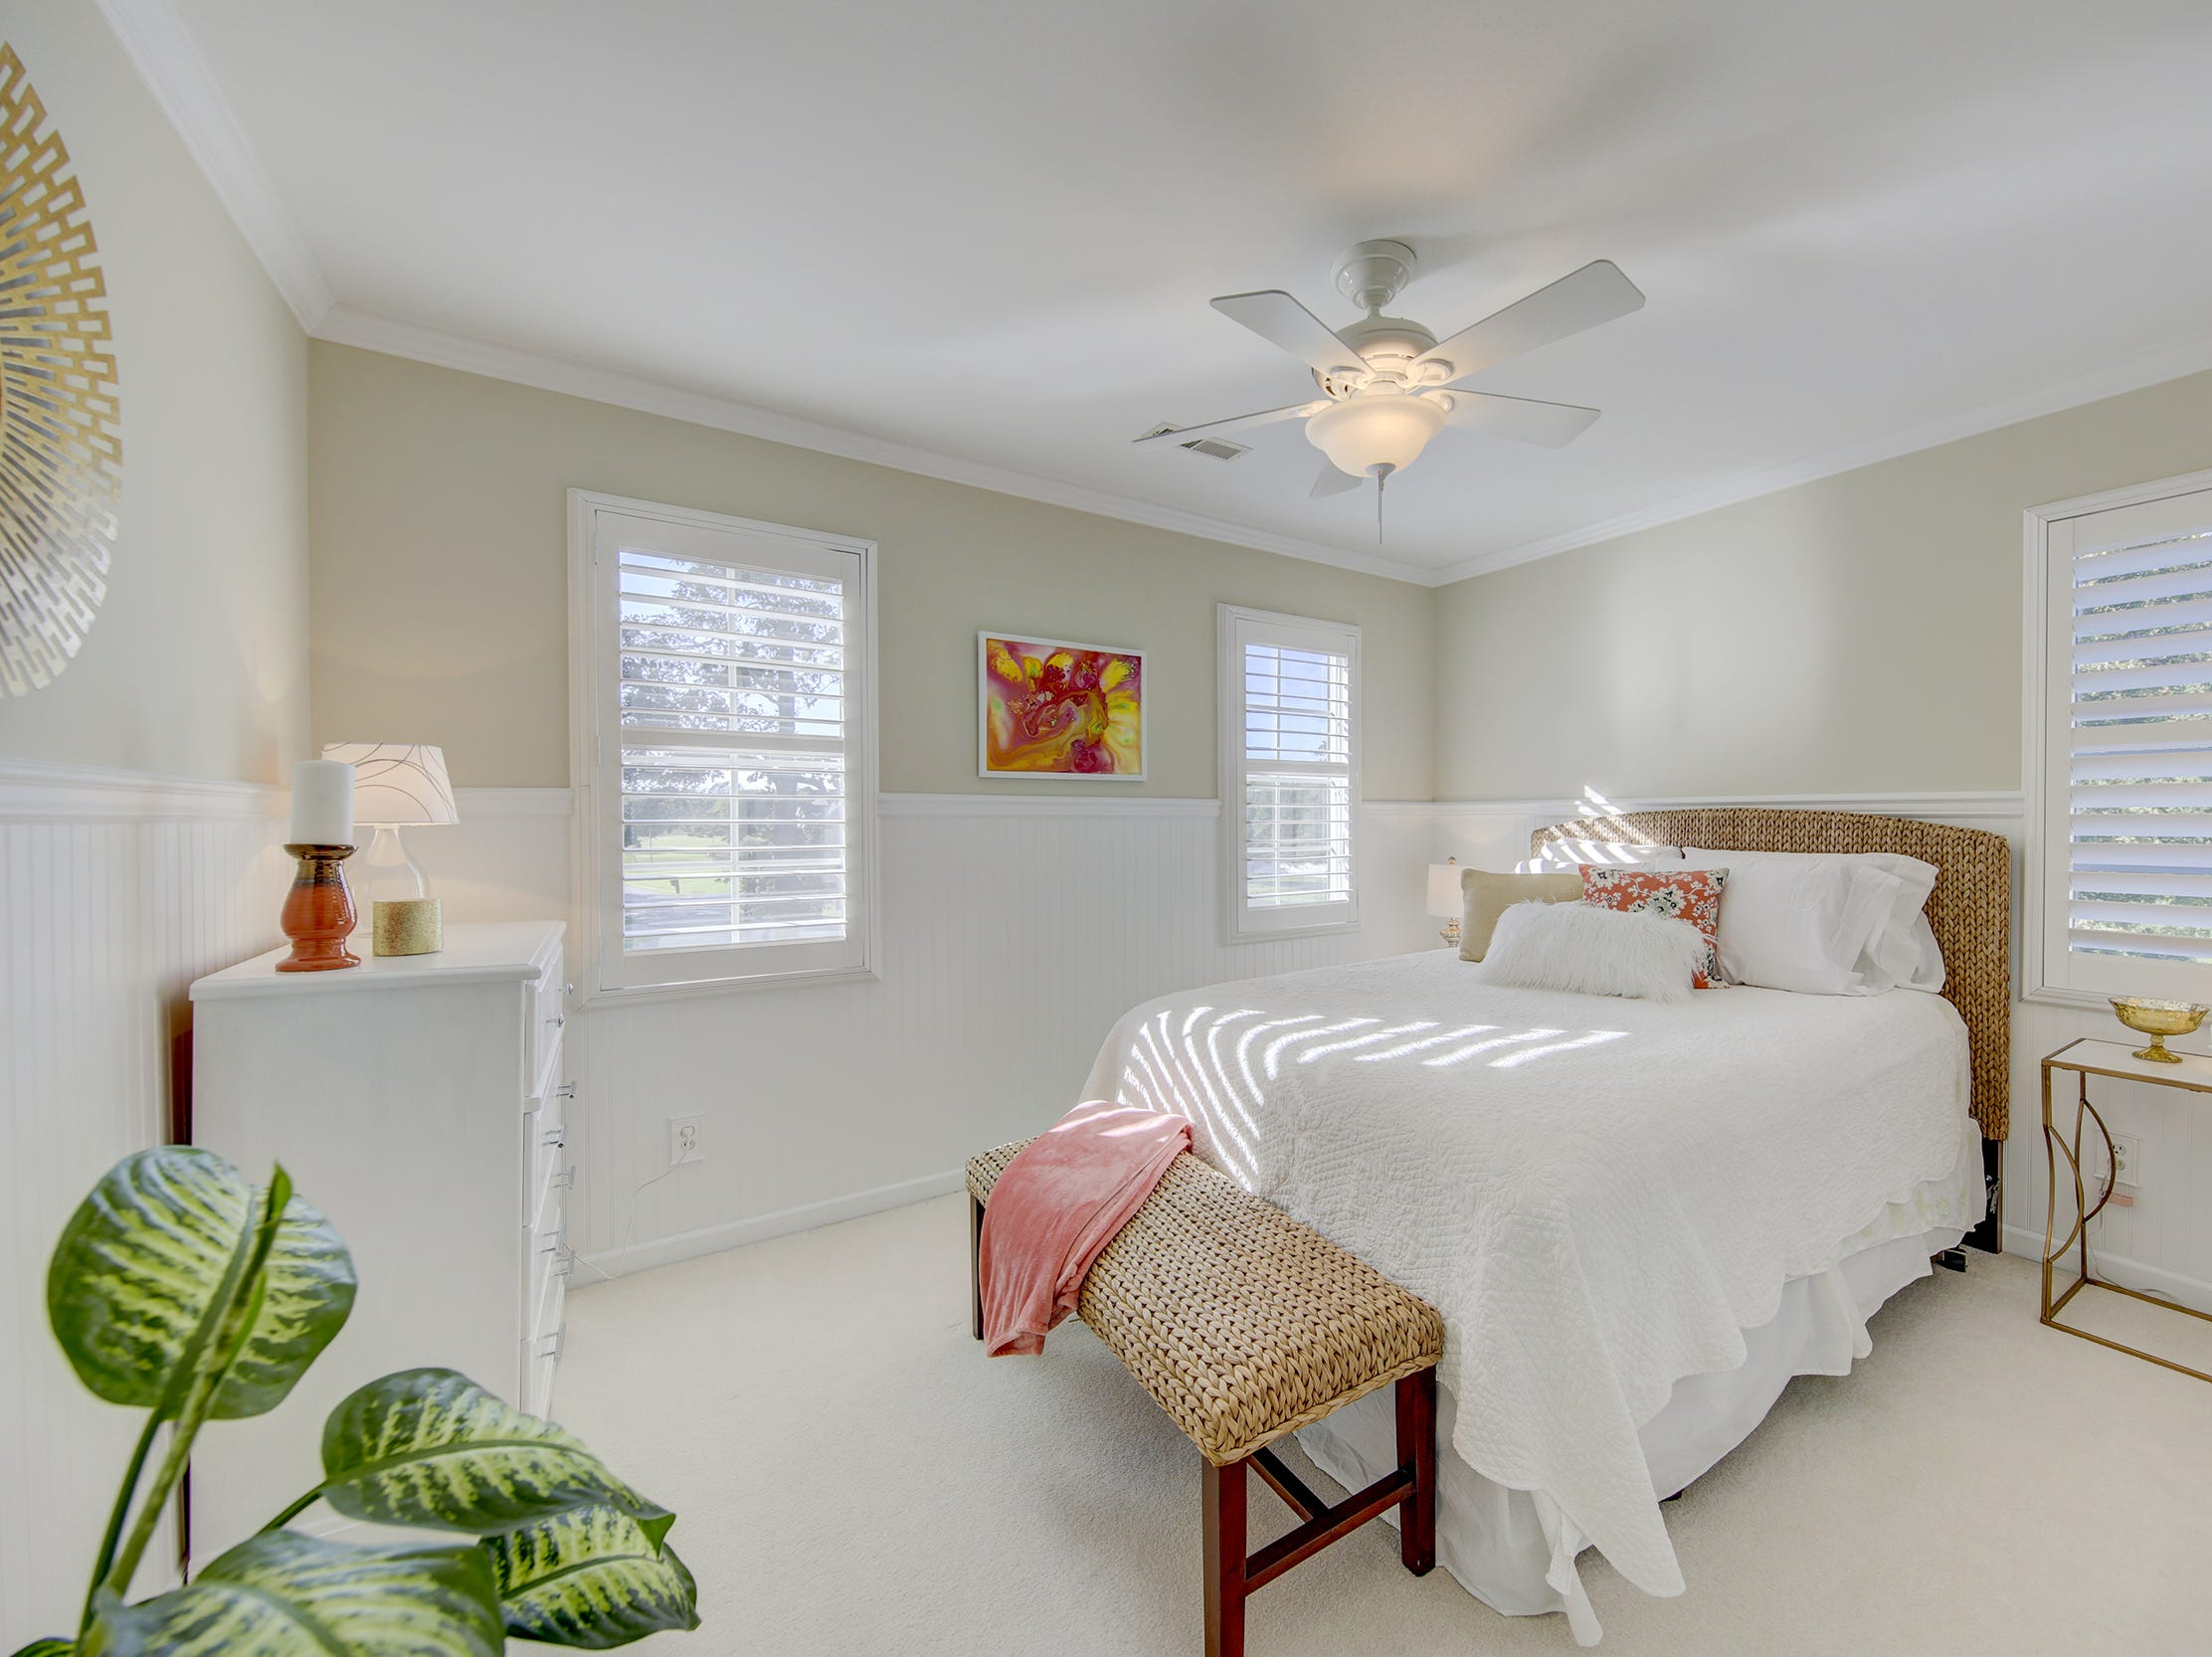 The house at 204 Lakeview Shores has five bedrooms, including four guestrooms.